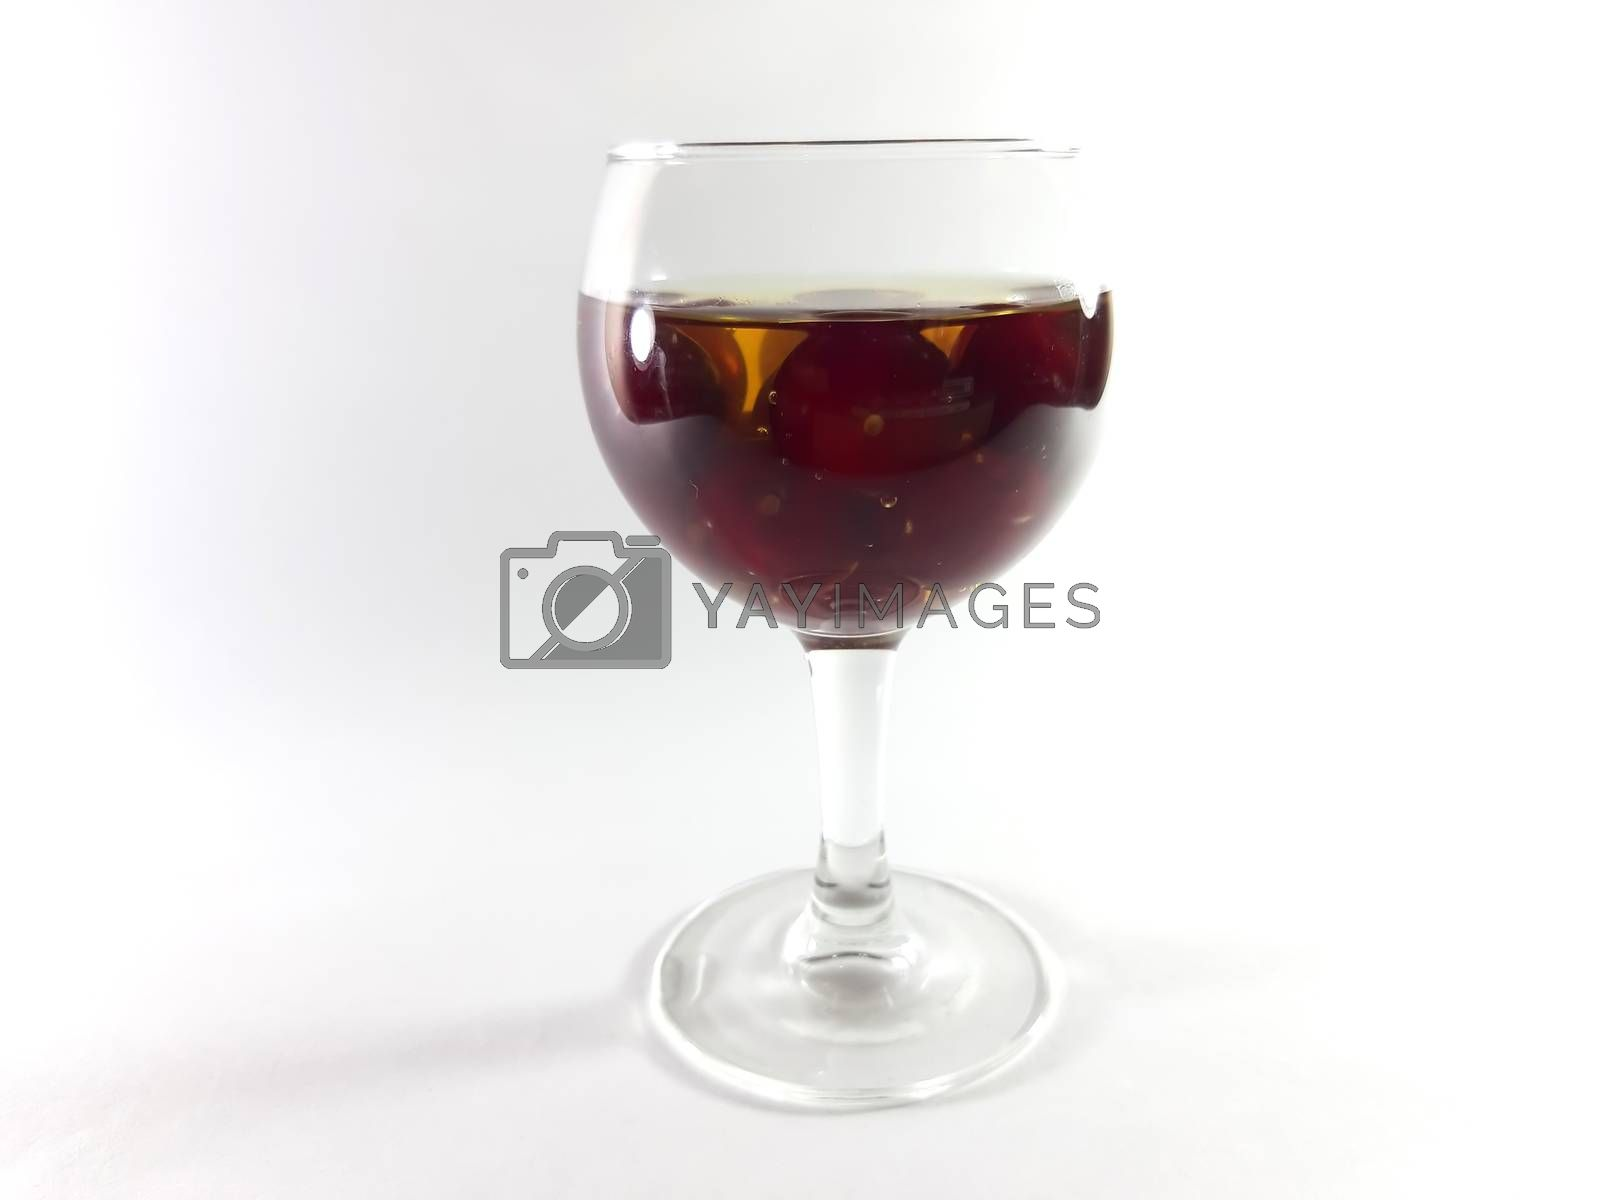 Drink with fruit in transparent glass. Cherry for a snack. Liquid in a glass. Photo isolated.